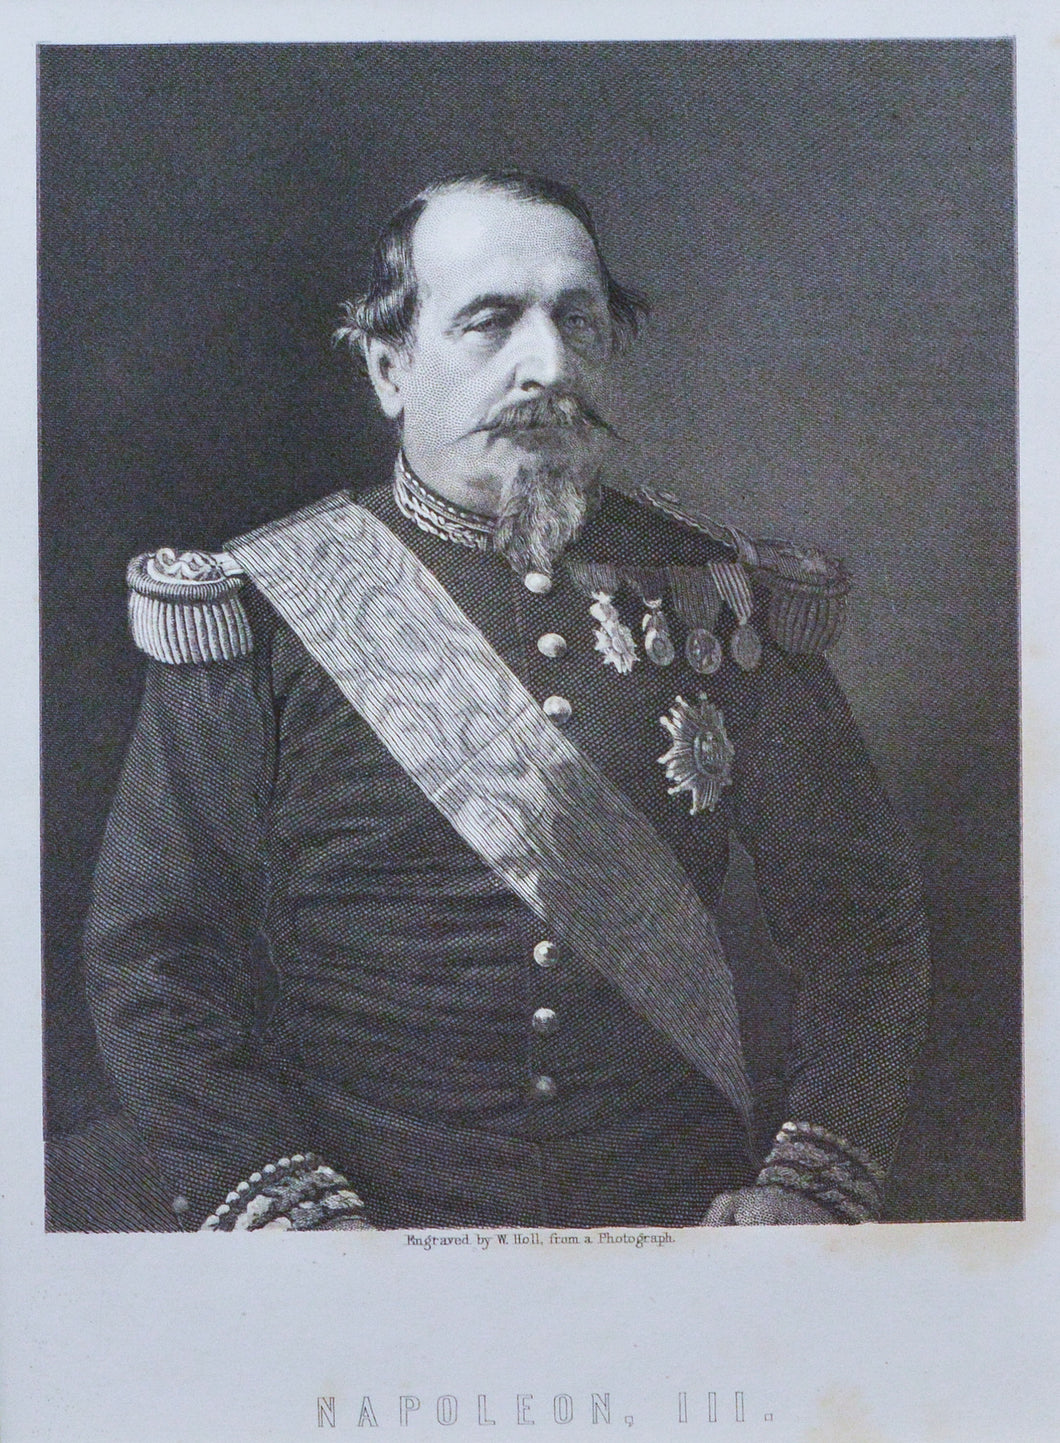 Napoleon III - Antique Steel Engraving circa 1860s